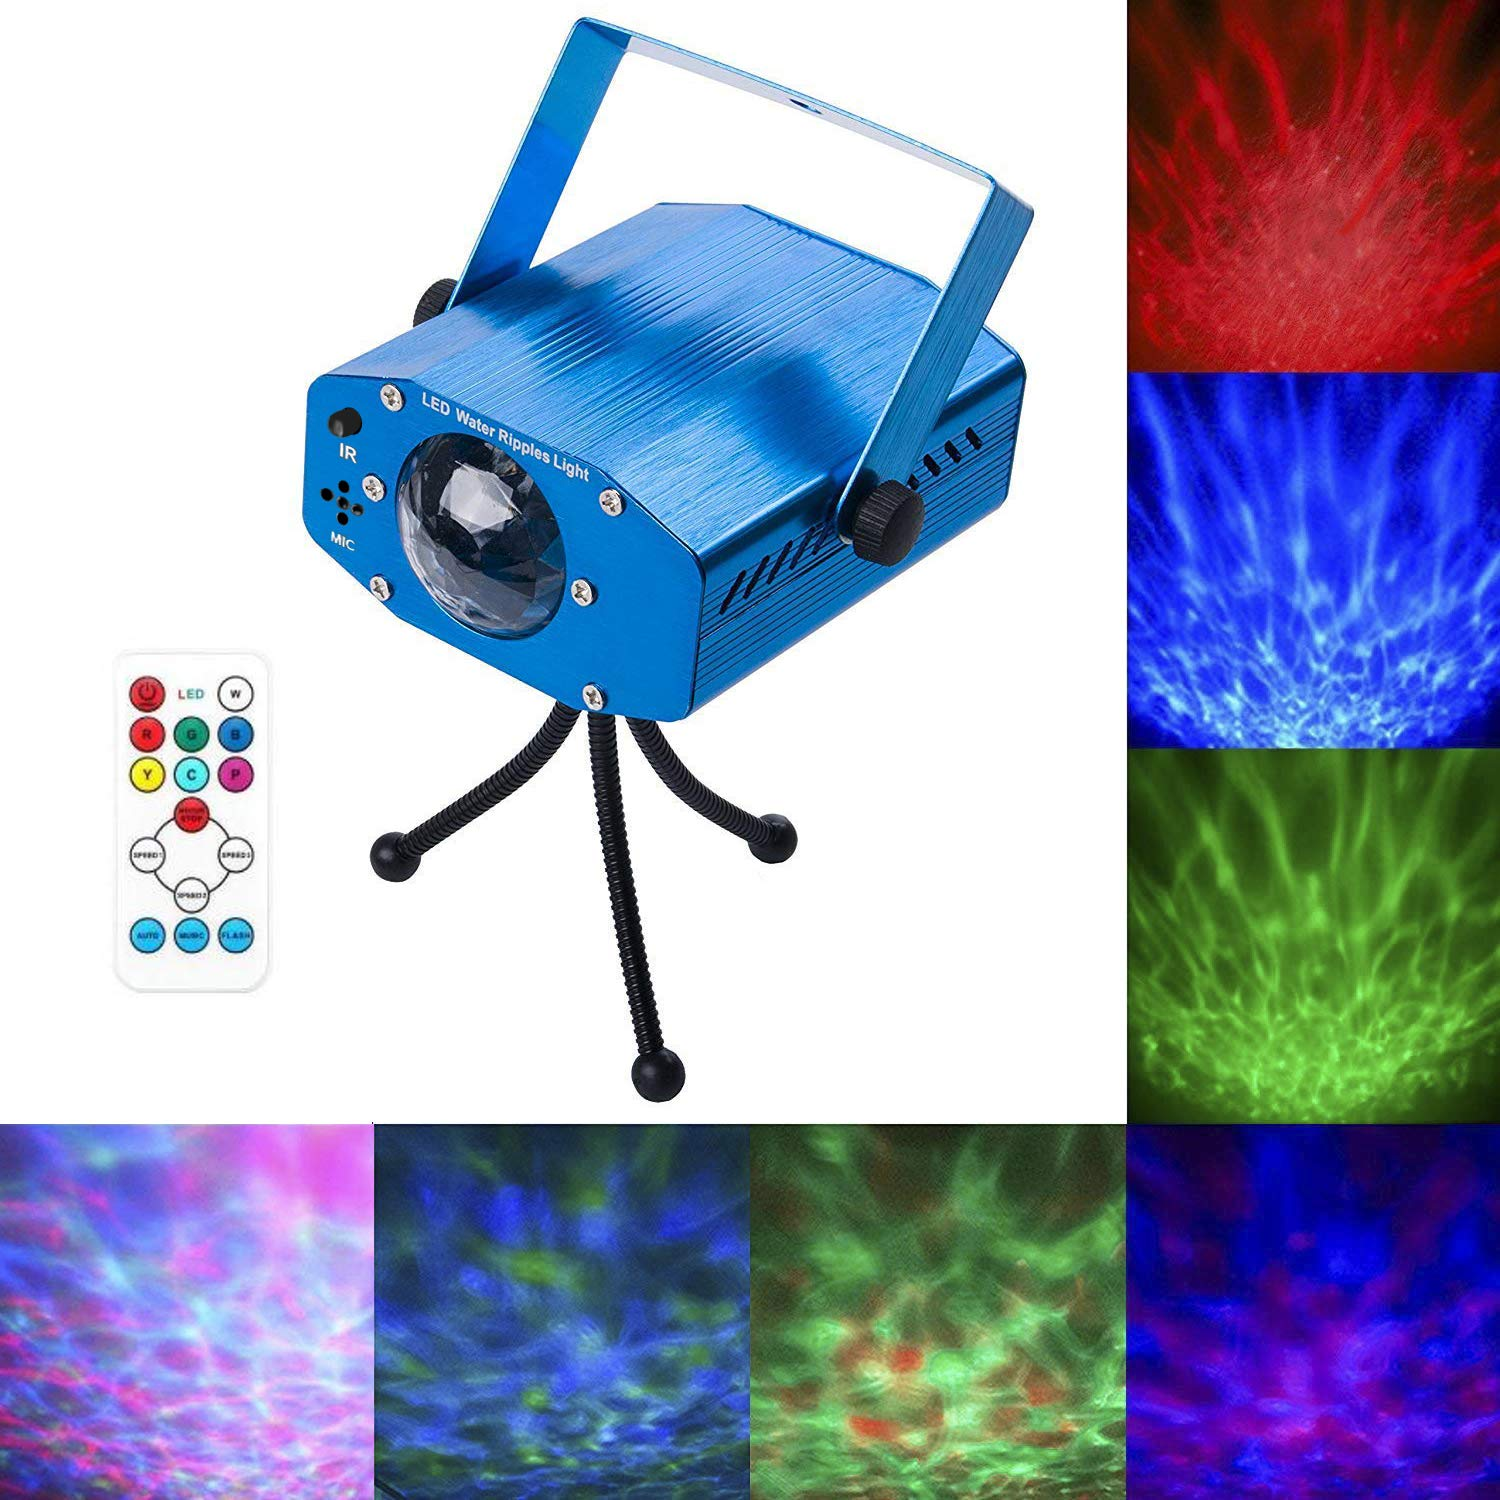 Leaden Party Laser Lights, 7 Colors Led Stage Party Light Projector, Strobe Water Ripples Lighting for Parties Room Show Birthday Party Wedding Dance Lighting with Remote Control(Blue) by leaden